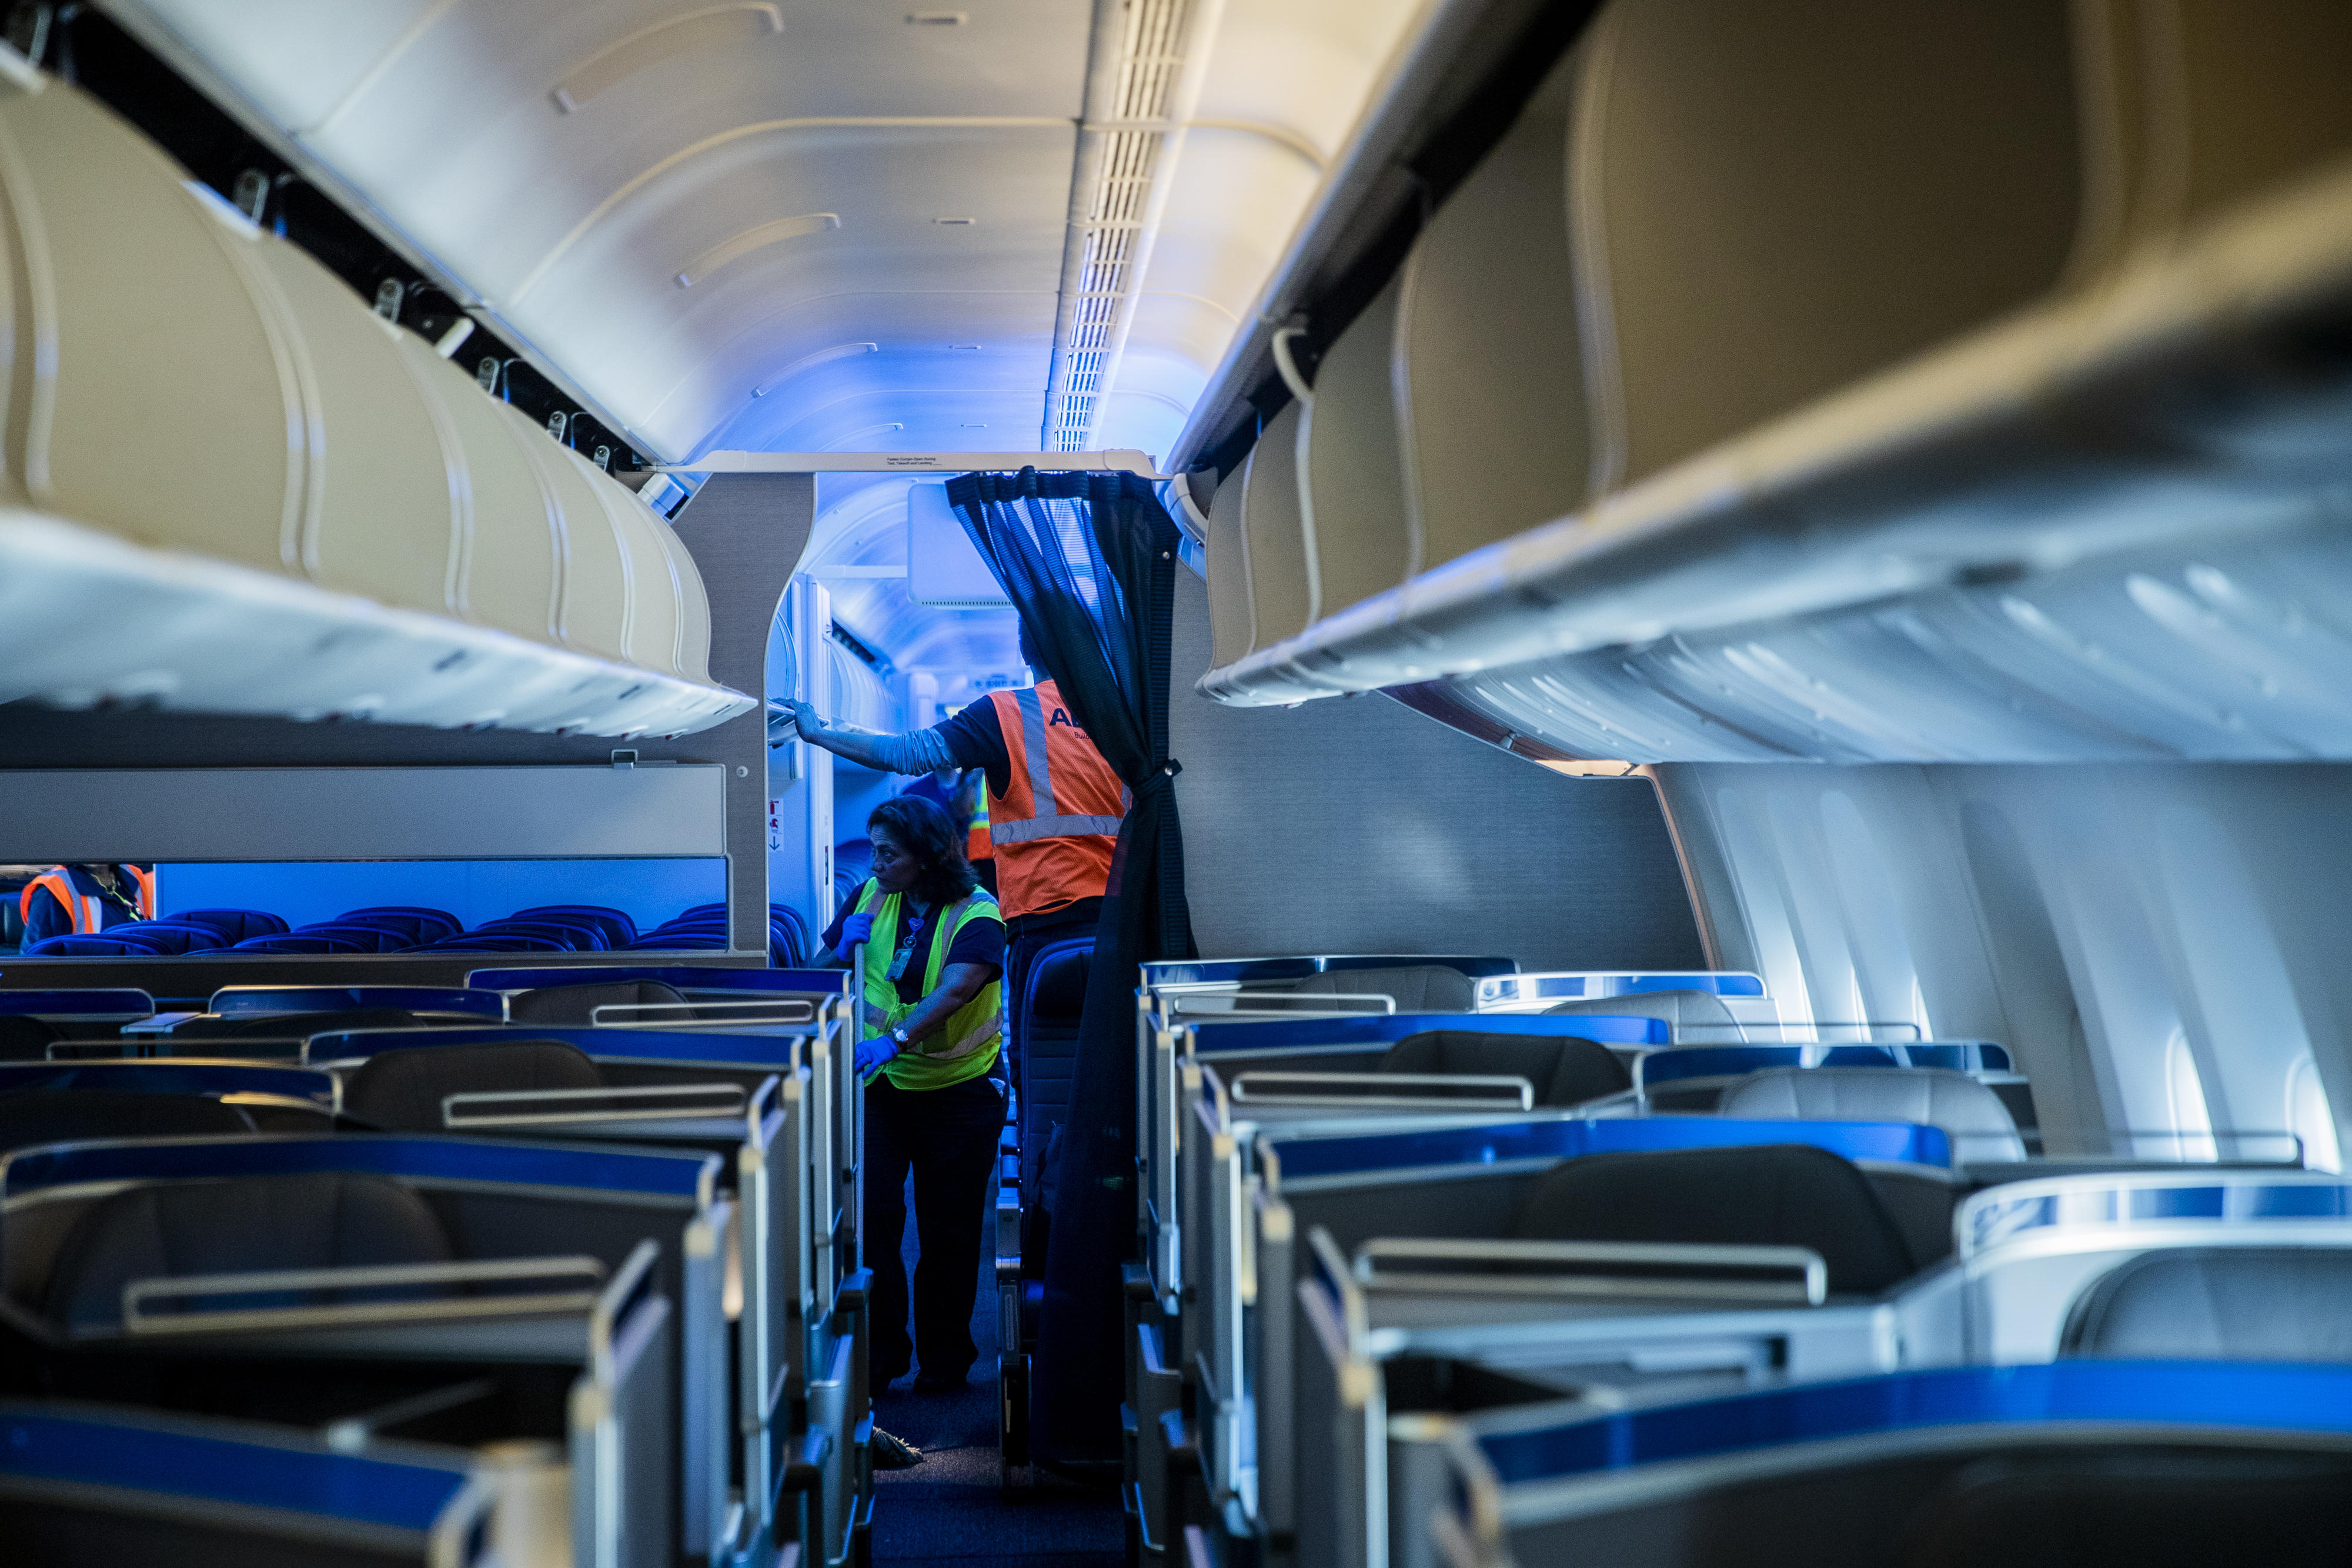 In the cabin of a Boeing 777, cleaning crews vacuum the floor and check the overhead bins for left items.